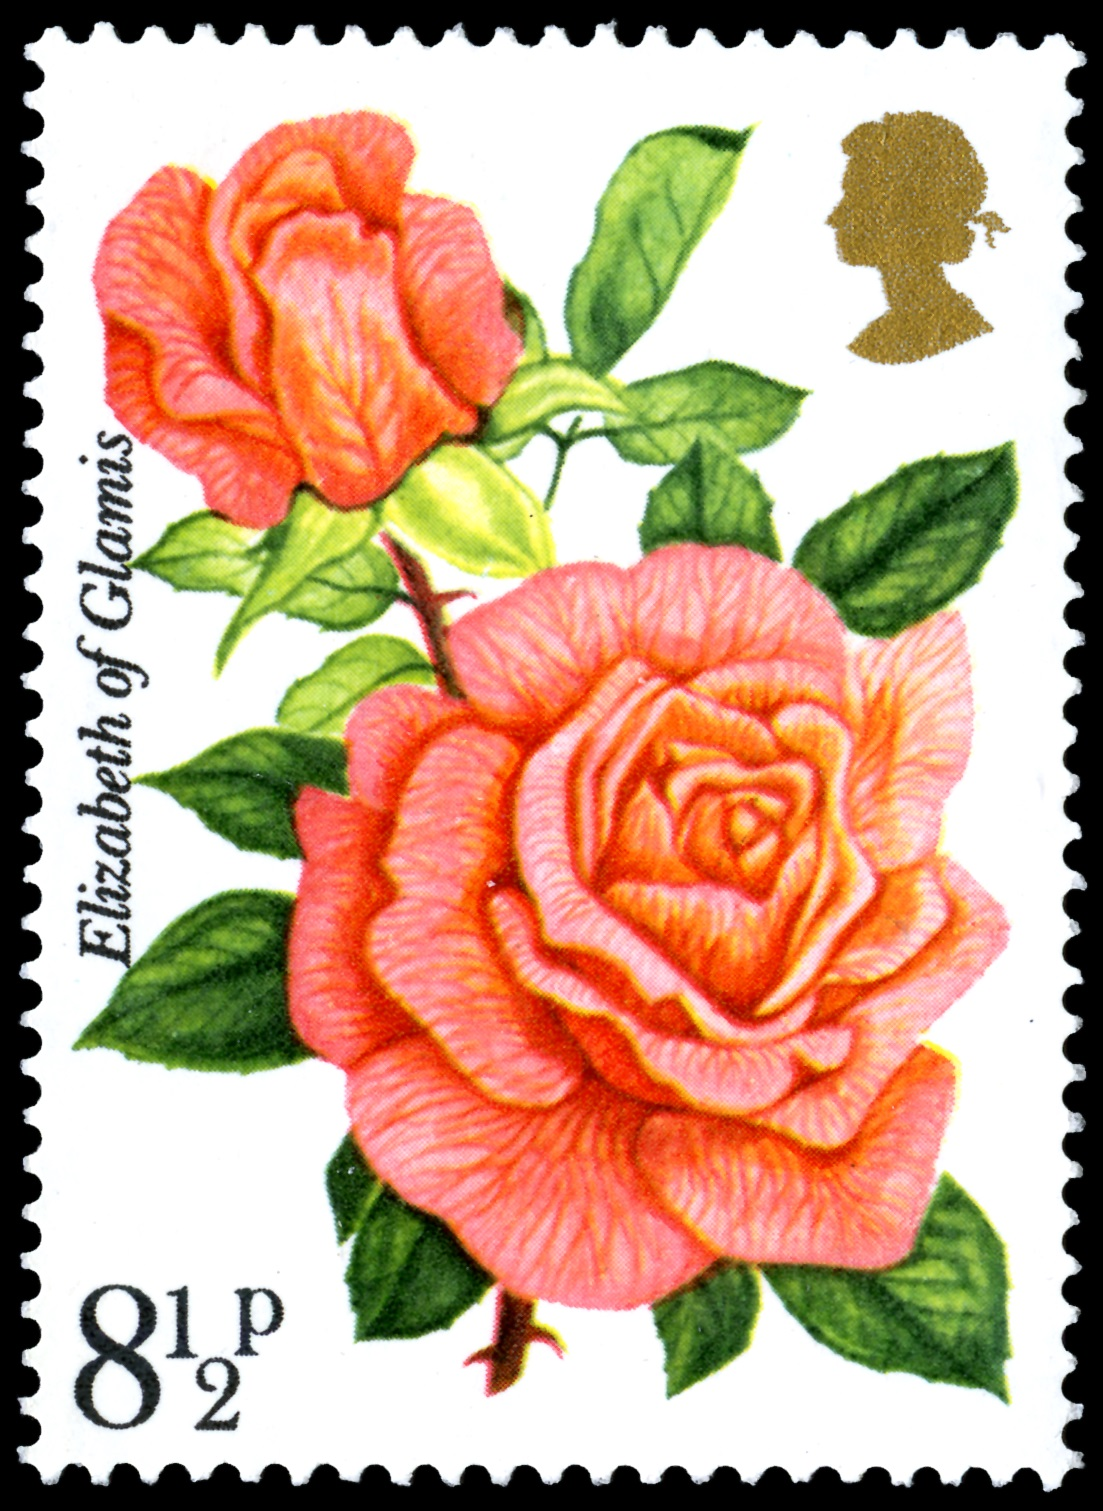 Red rose stamp with a value of 8 and a half pence.